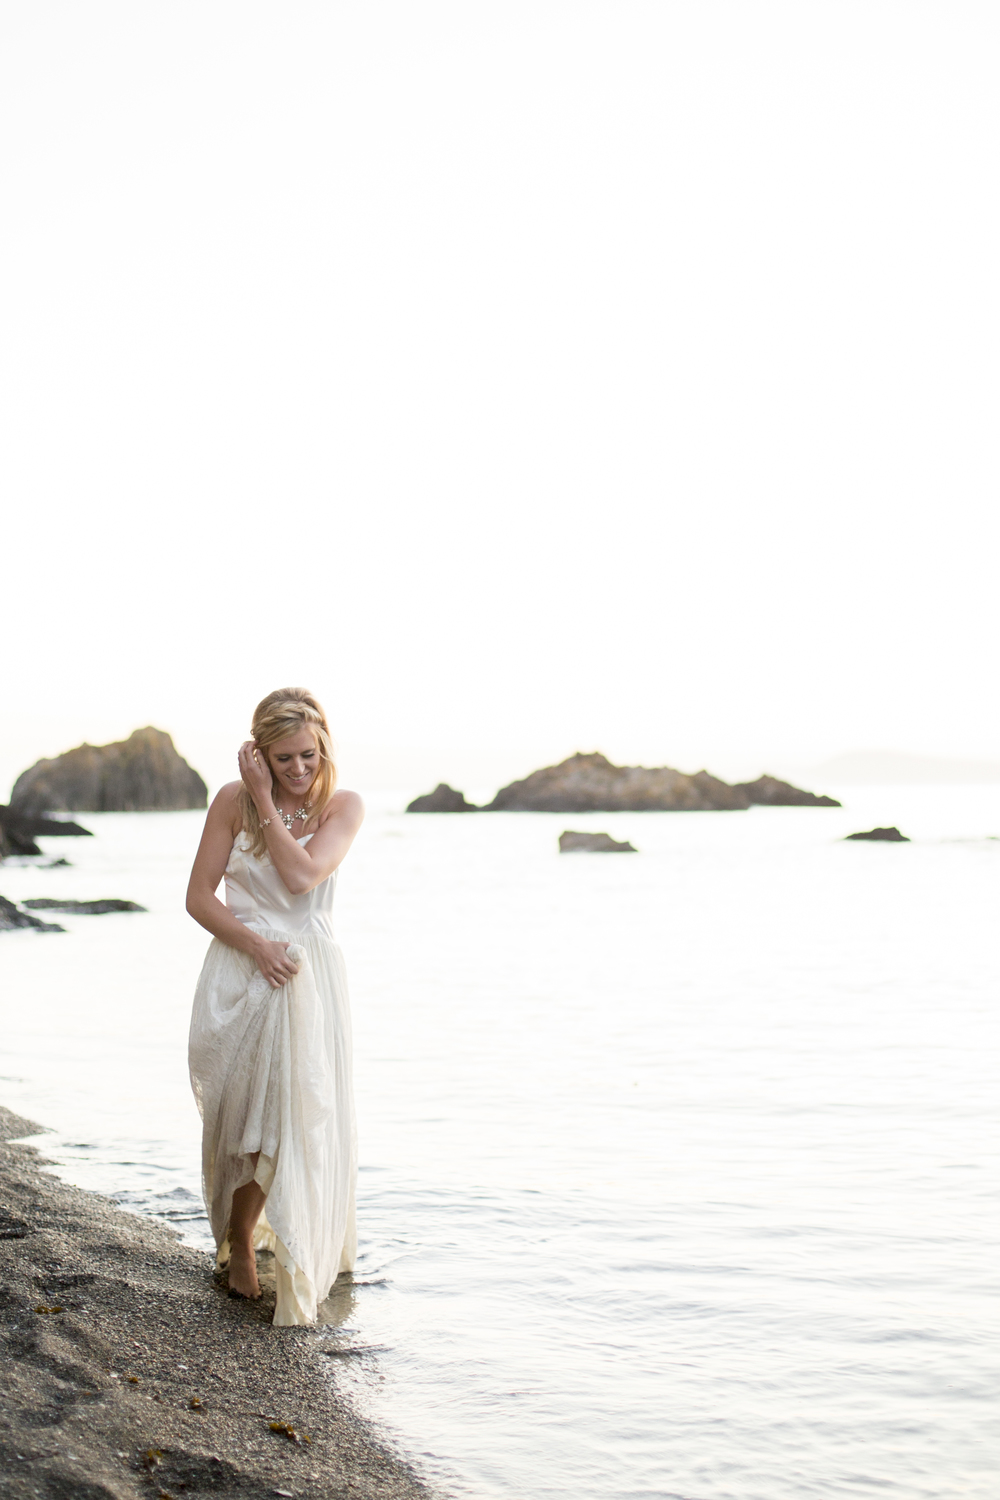 BrookeTaylorStudios_weddingphotographerkayla137.jpg